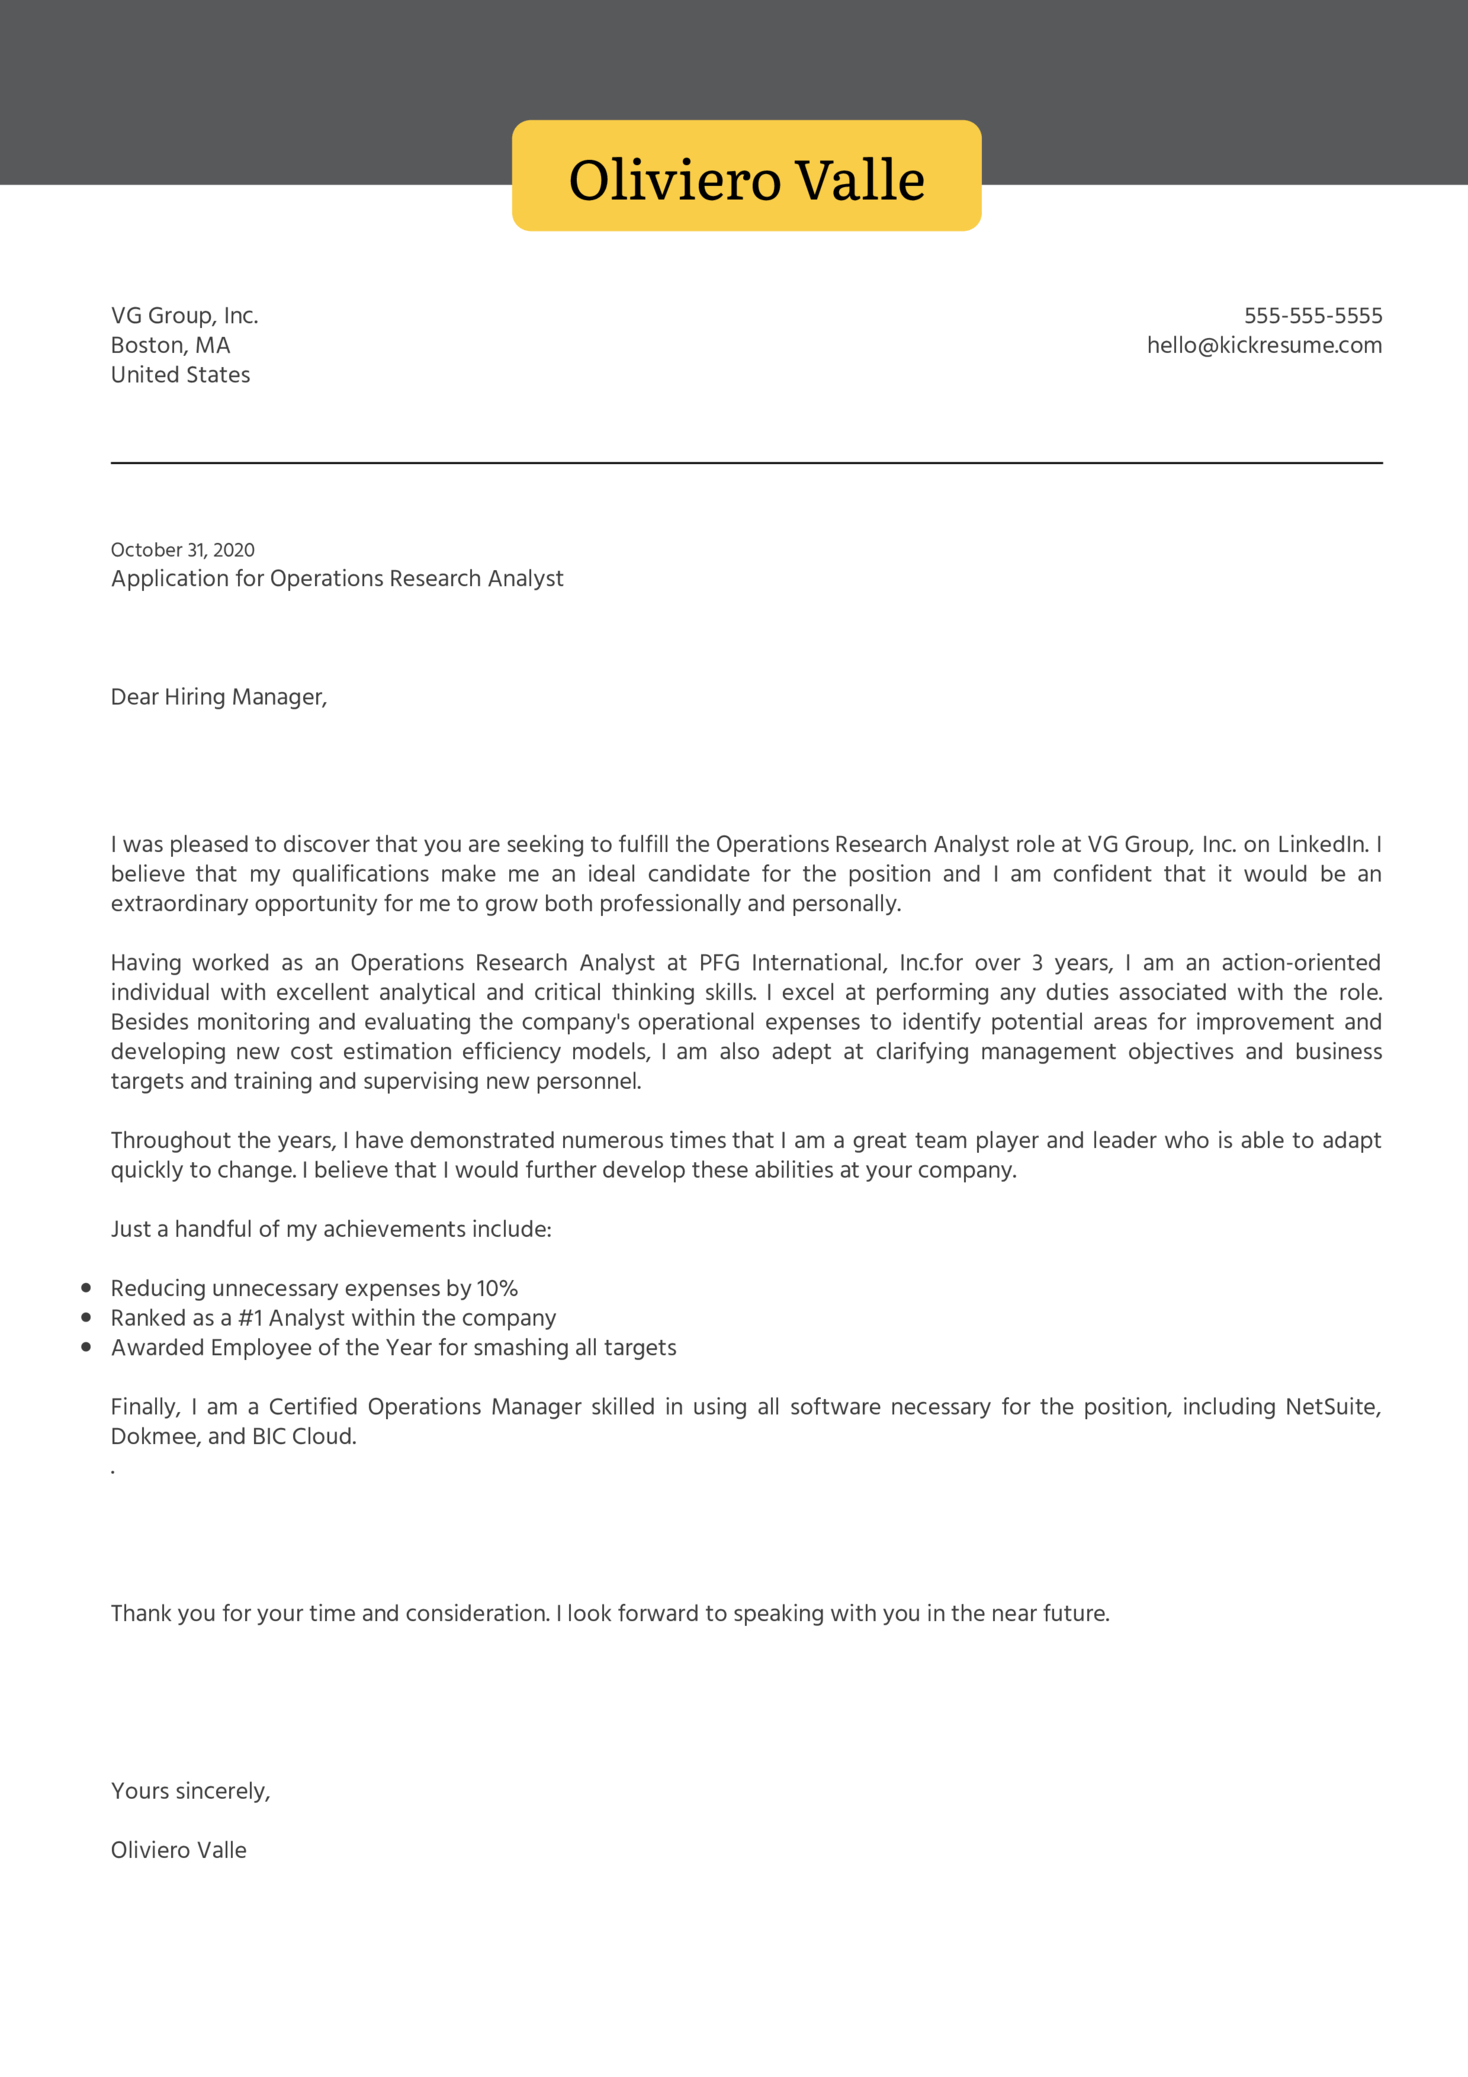 Operations Research Analyst Cover Letter Sample